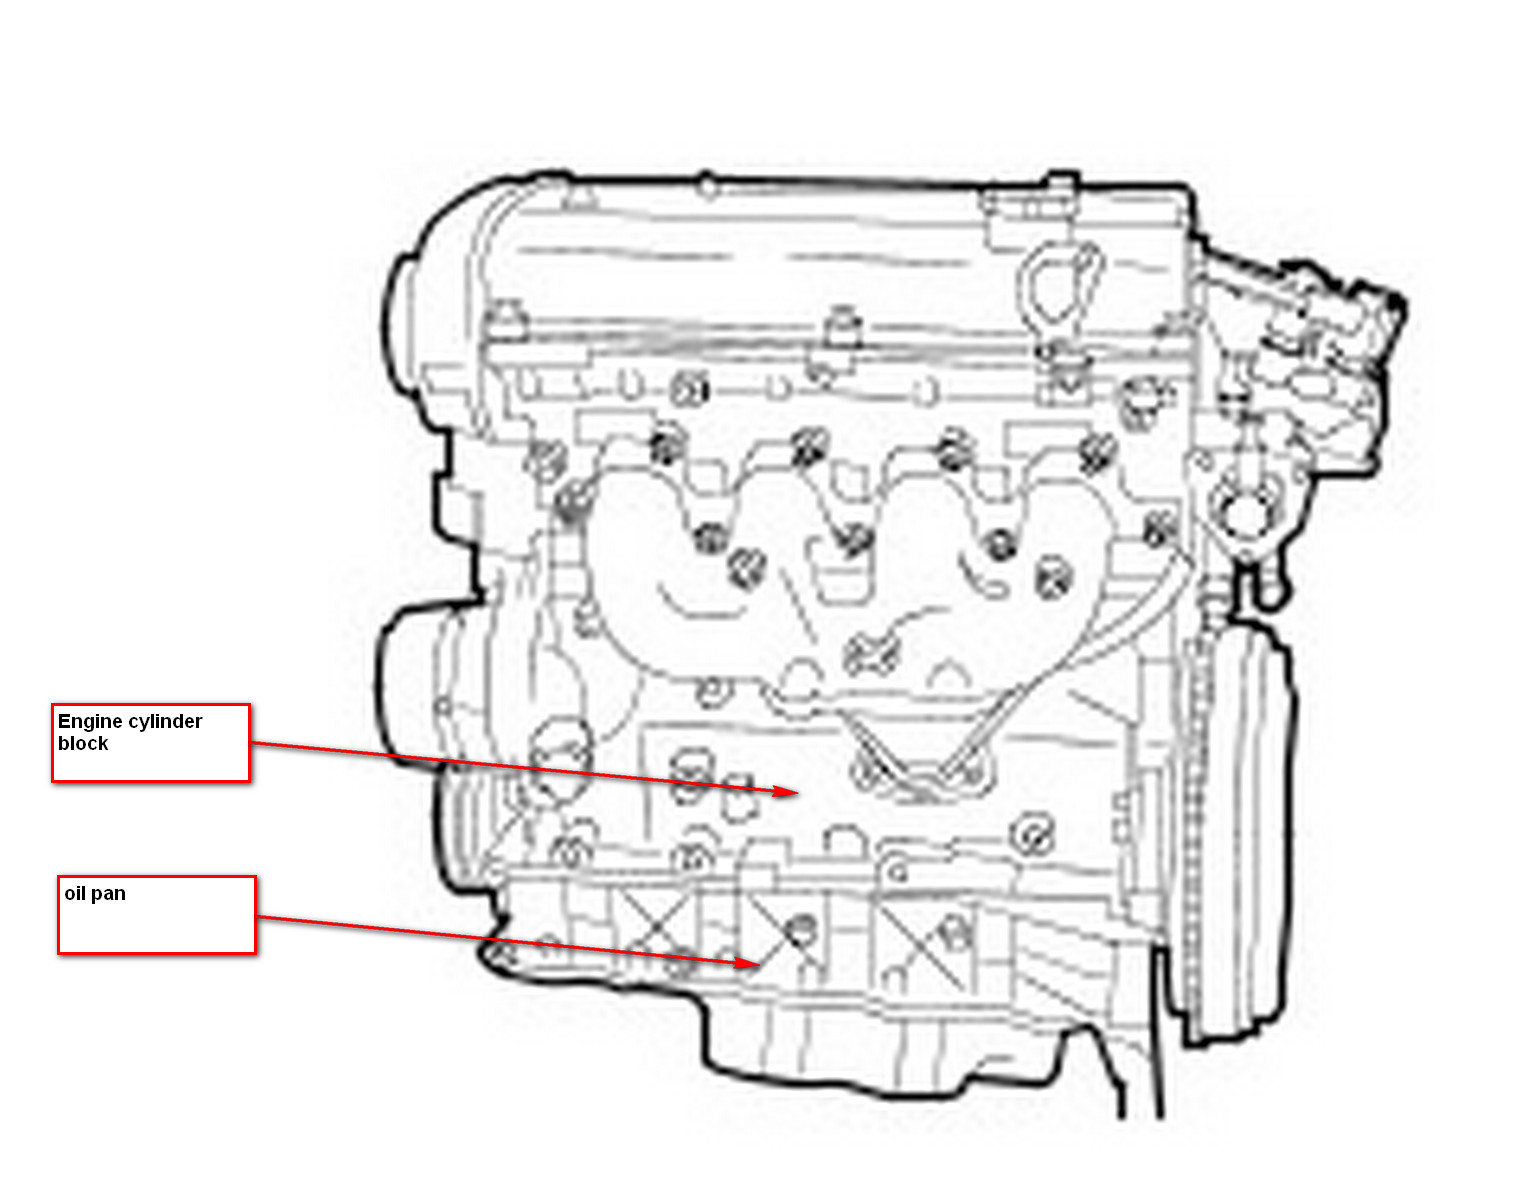 What Is The Part Directly Above The Oil Pan